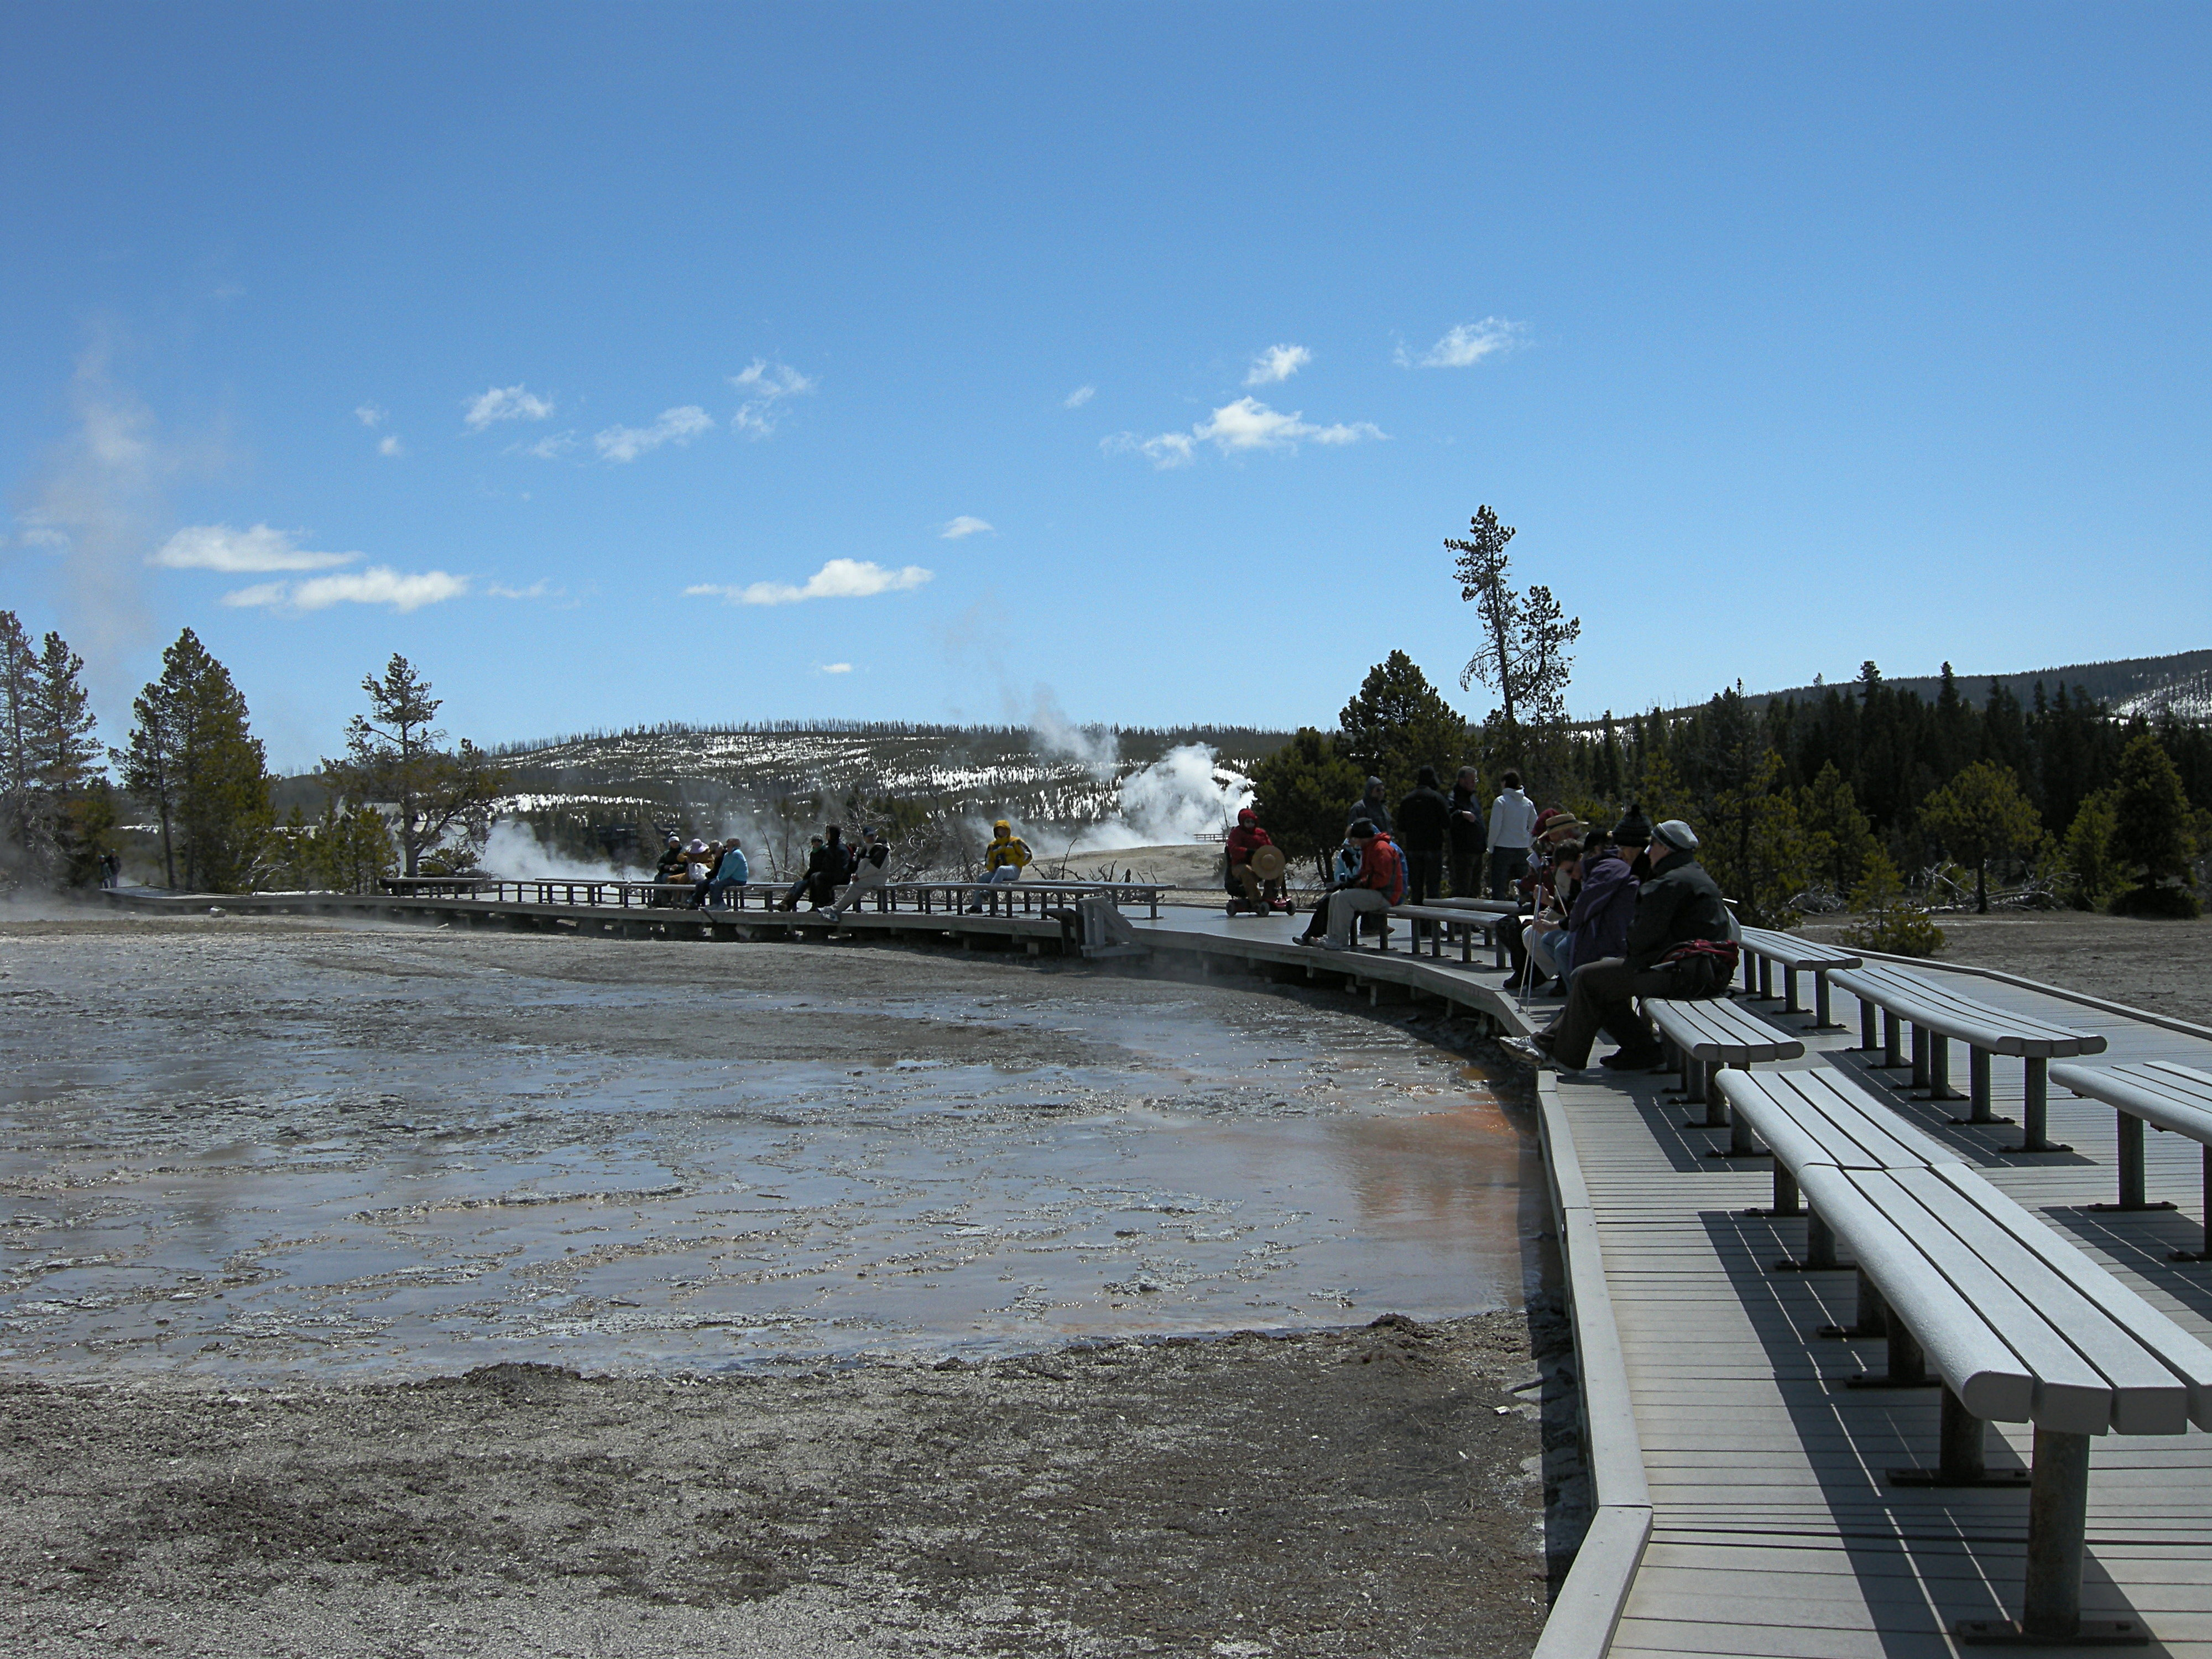 Waiting for Grand Geyser to erupt